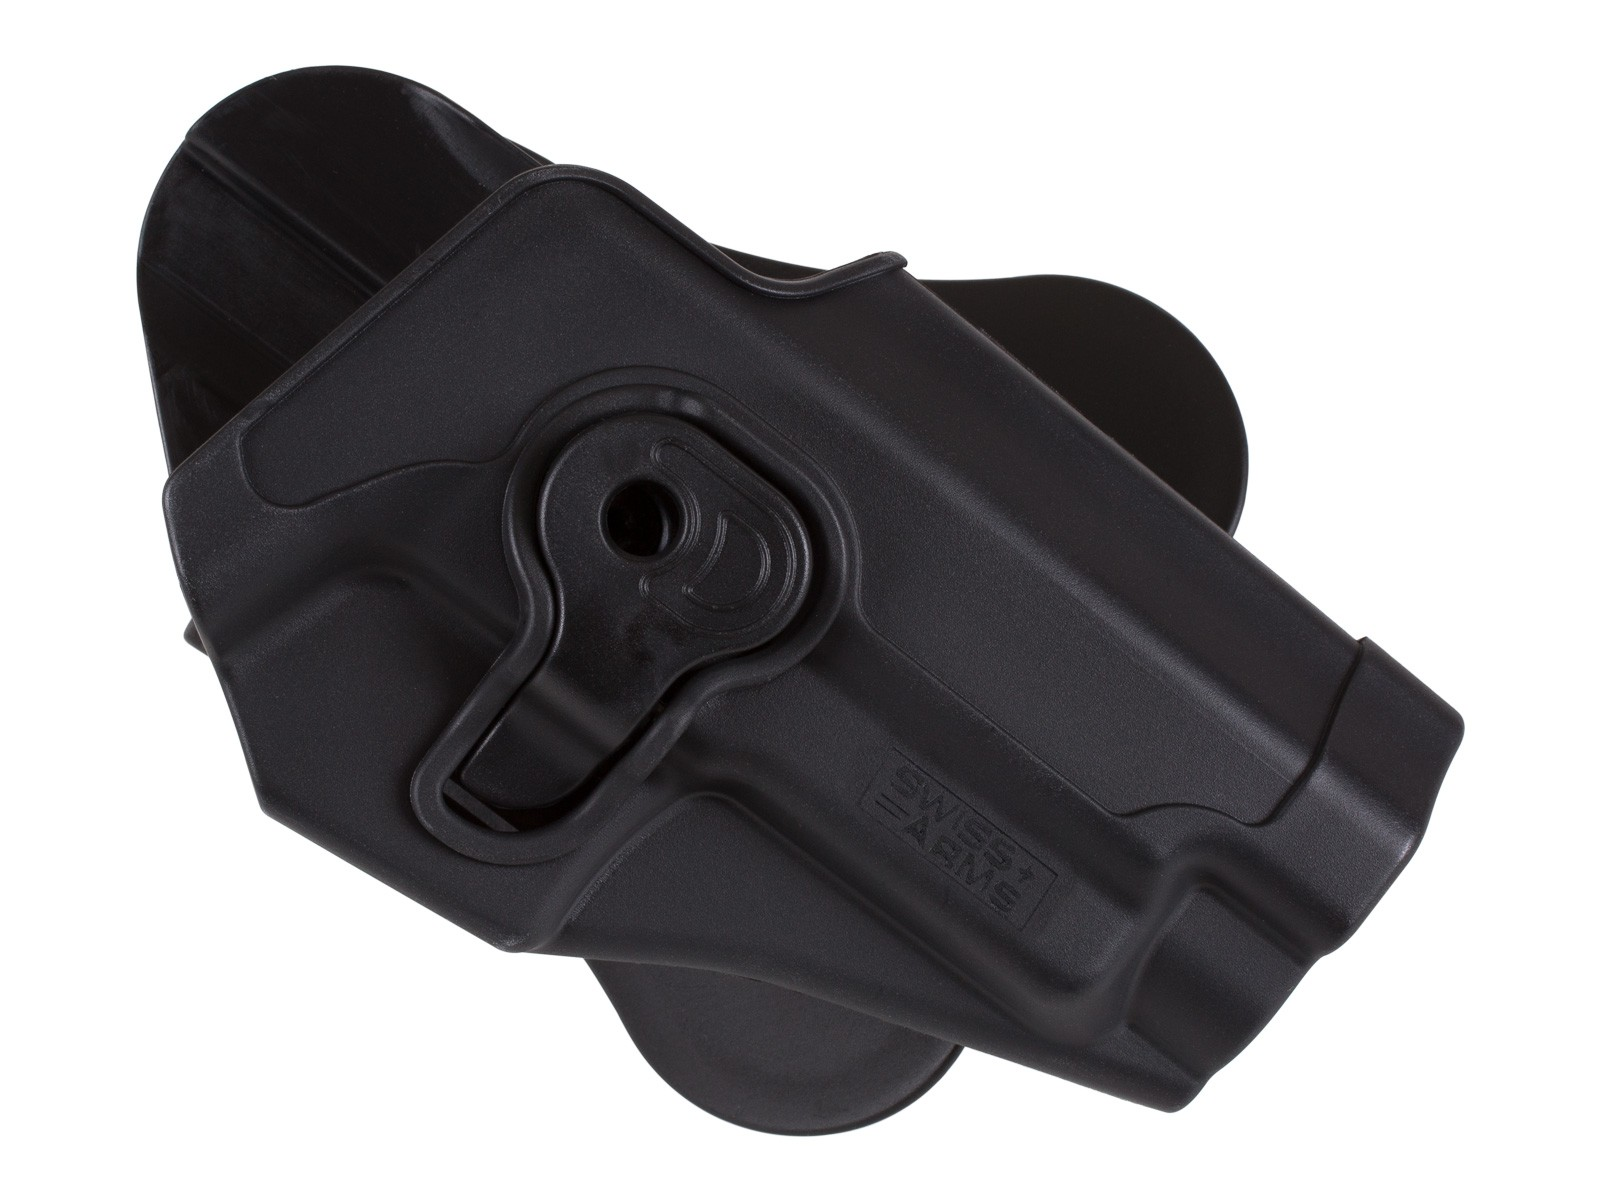 Swiss Arms S226 Paddle Polymer Holster for Sig Sauer Air & Airsoft Pistols, Black